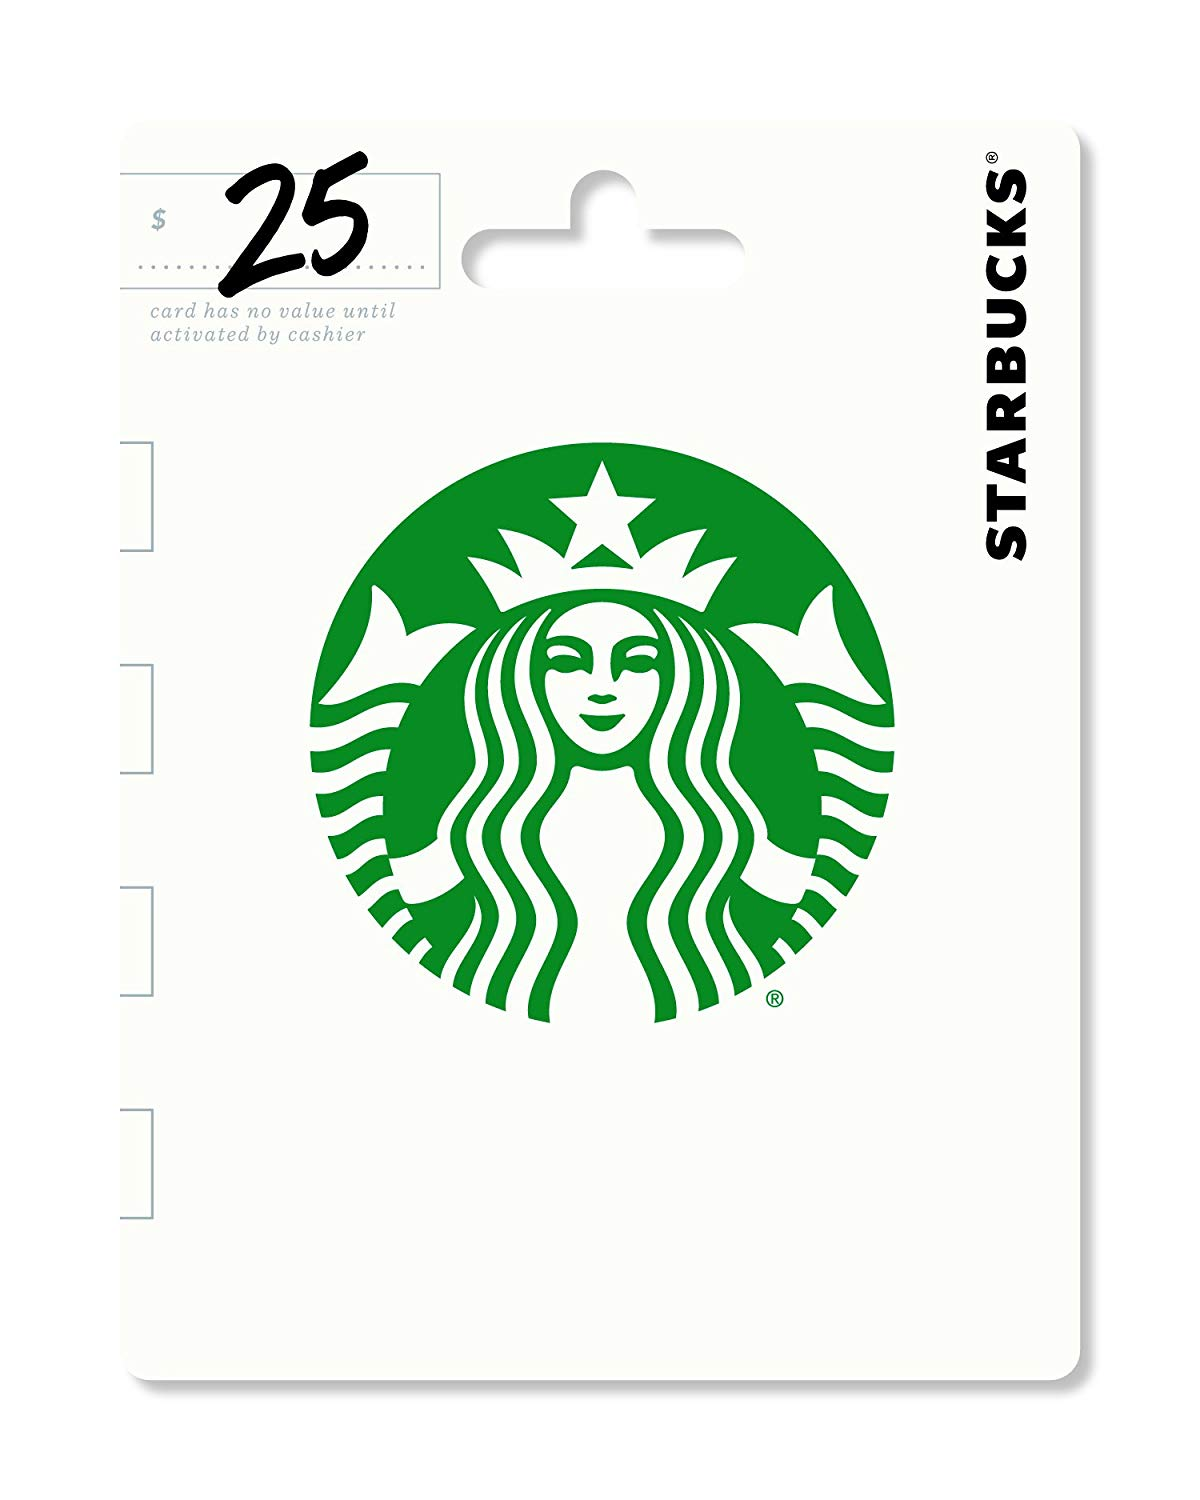 Starbucks $50 gift card